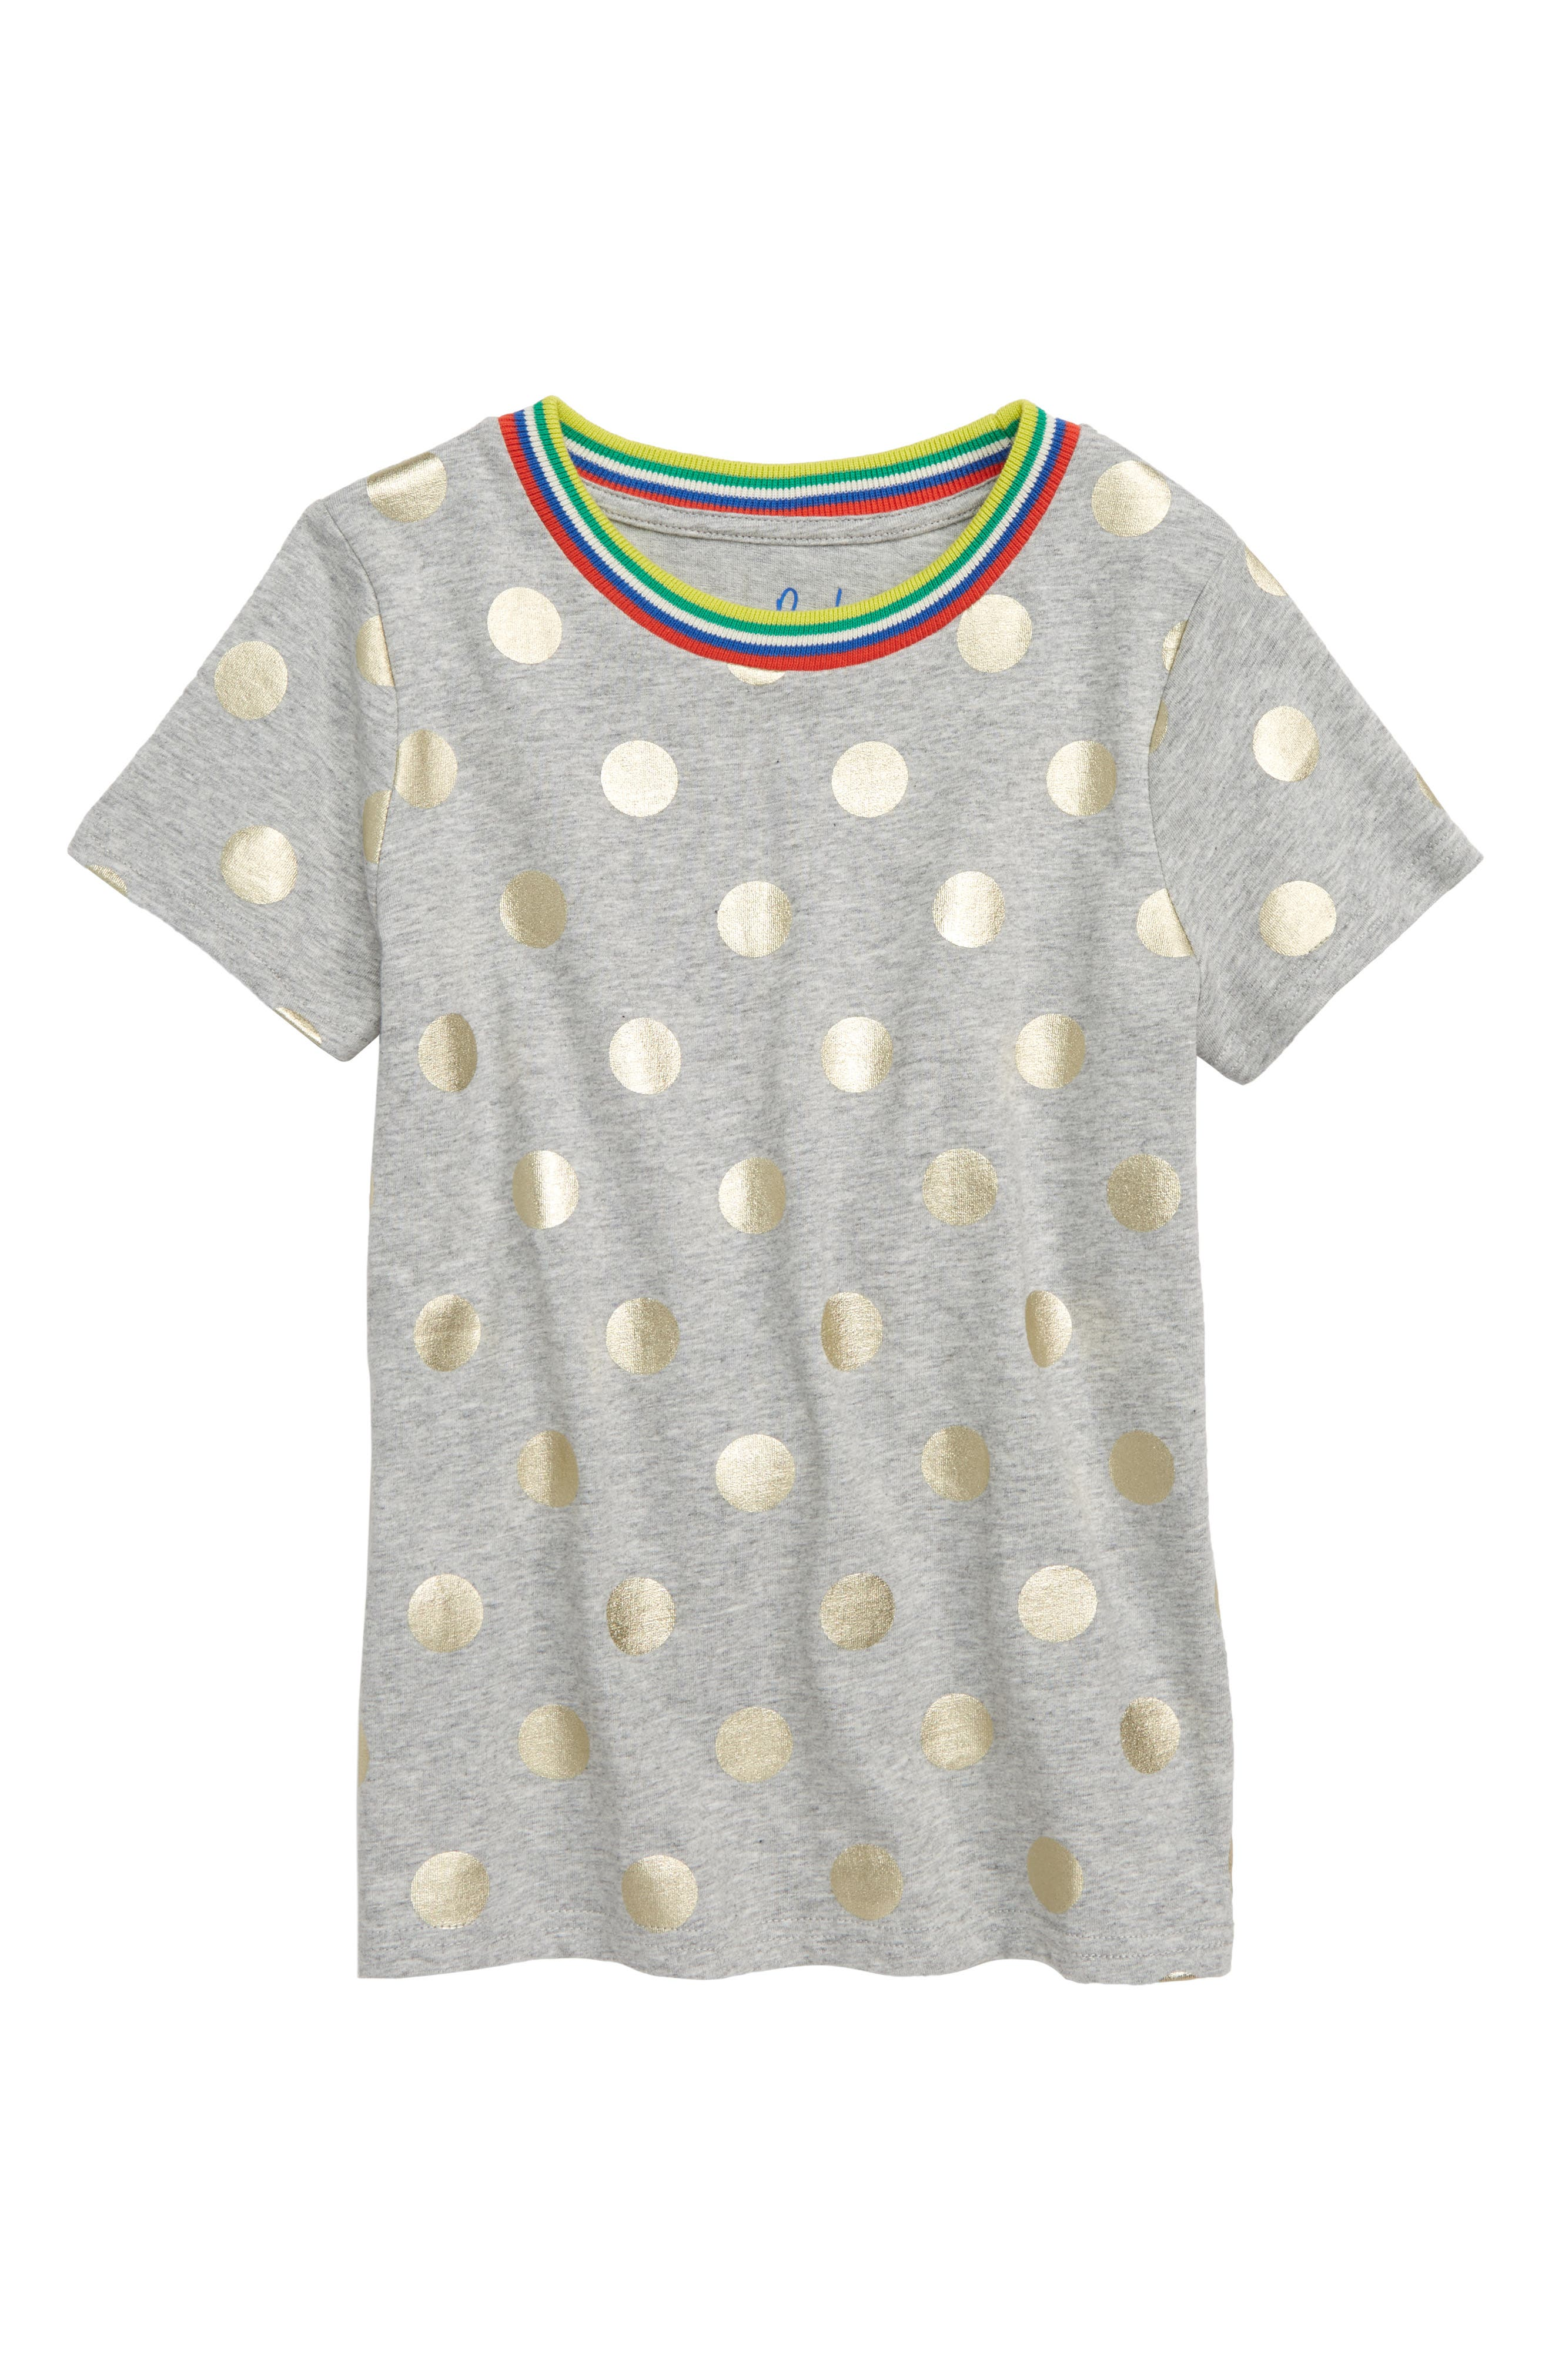 Time to Shine Tee,                         Main,                         color, GREY MARLE/ GOLD FOIL SPOT